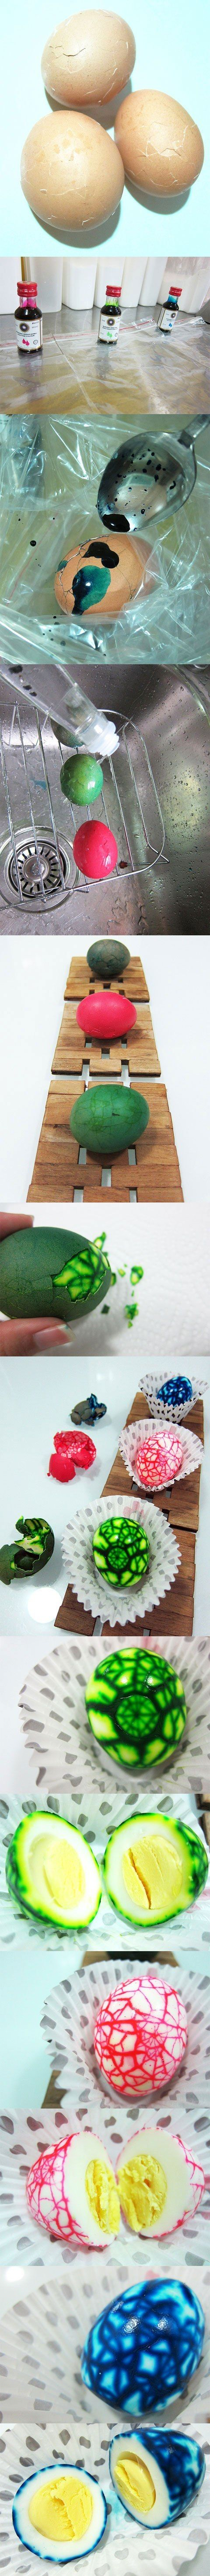 easter eggs just got cooler